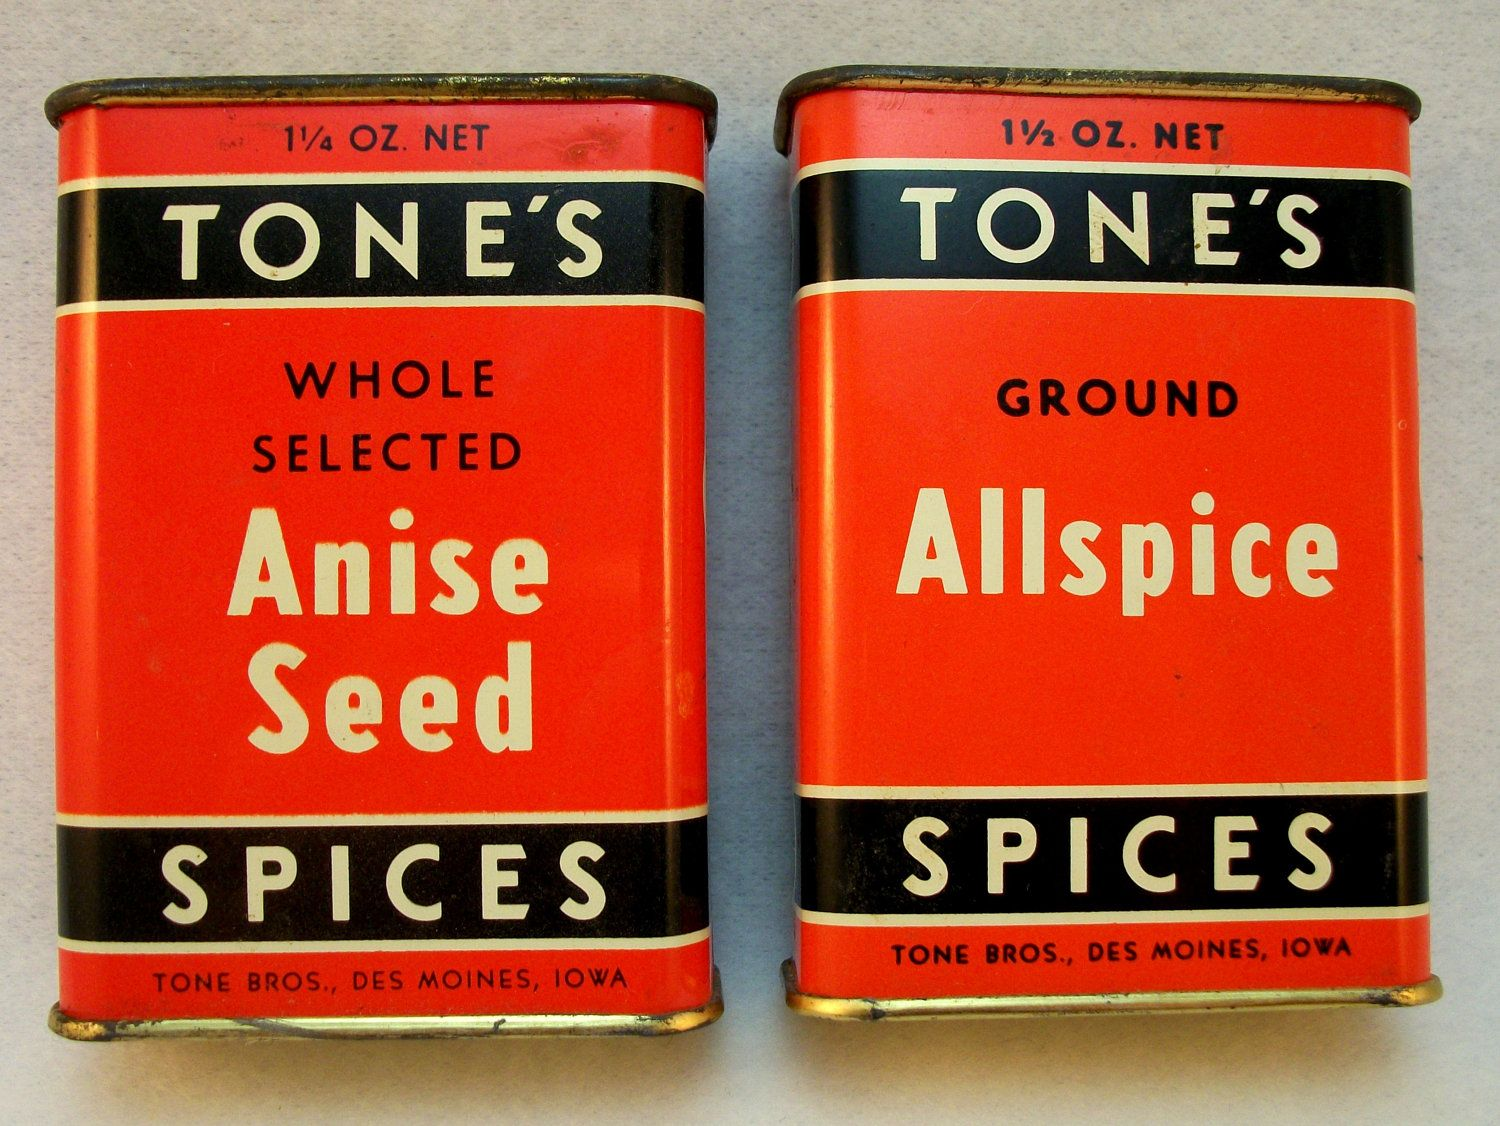 Vintage Tones Spice Tins Company Established In Iowa In 1873